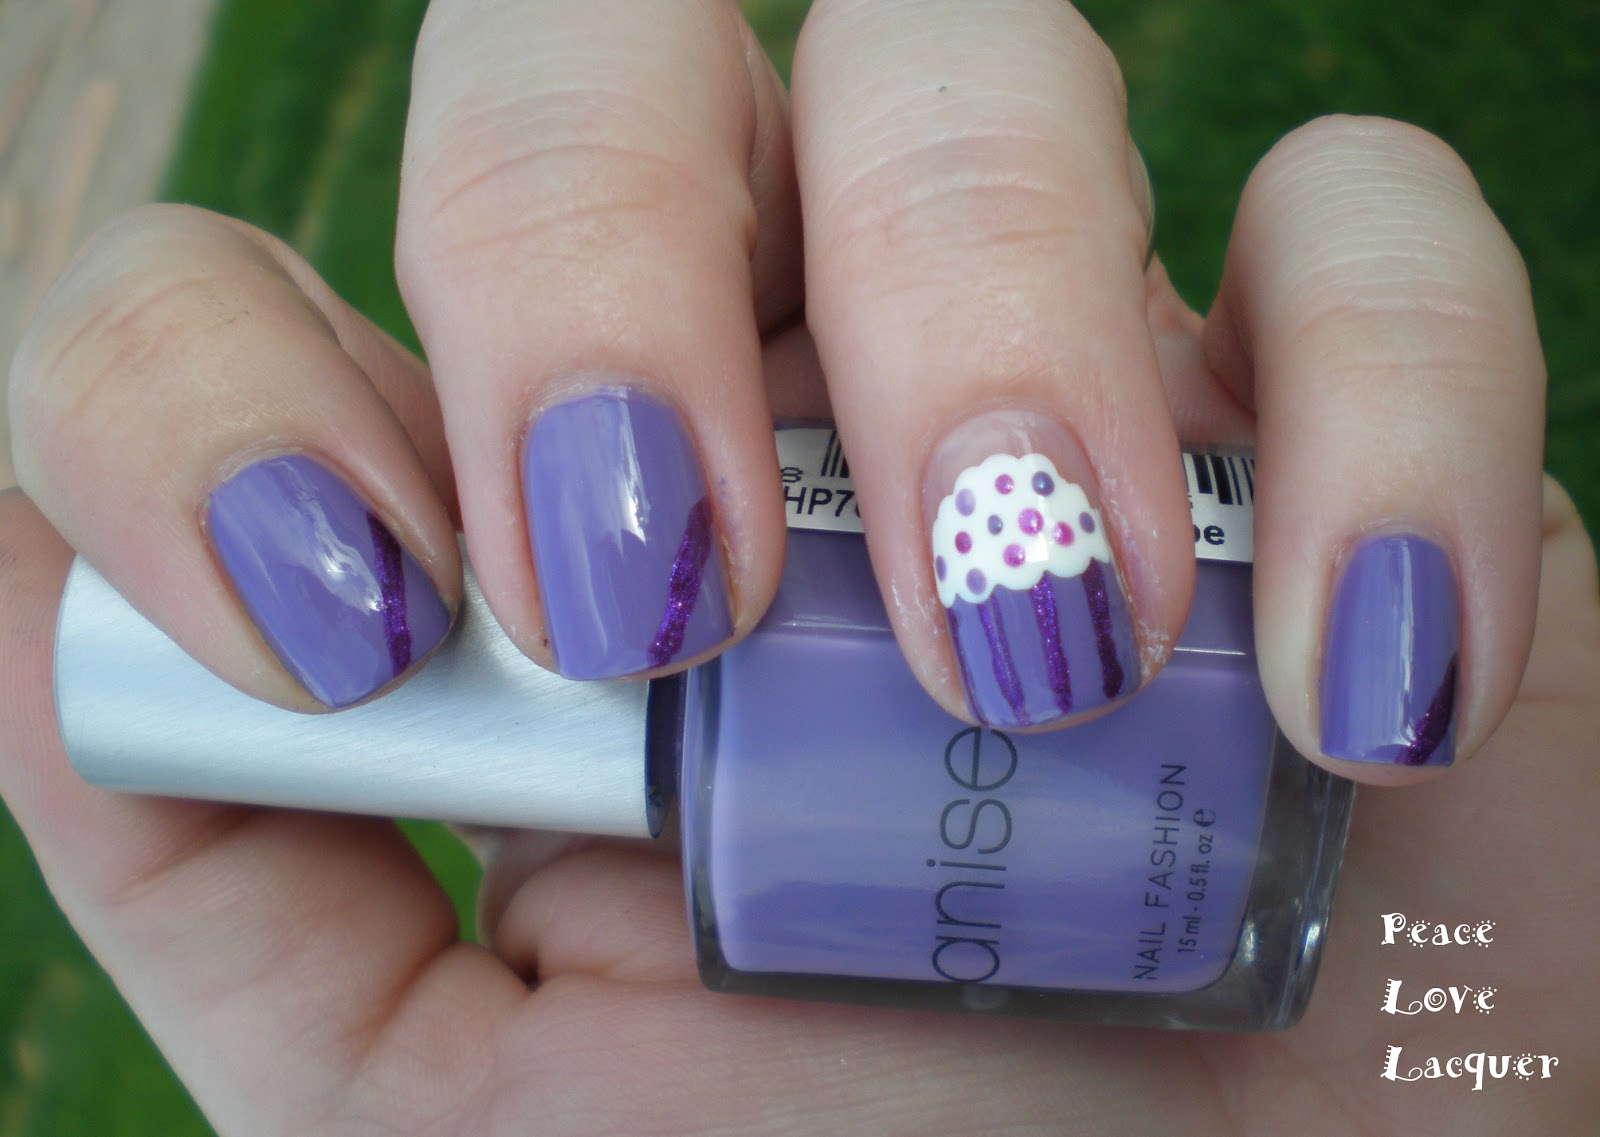 Nail art color violet - I Used Anise Grape Escape Reviewed Here And A Dark Violet Shimmer Polish From Color Club It Doesn T Have A Name One It I Bought It In A Collection Pack